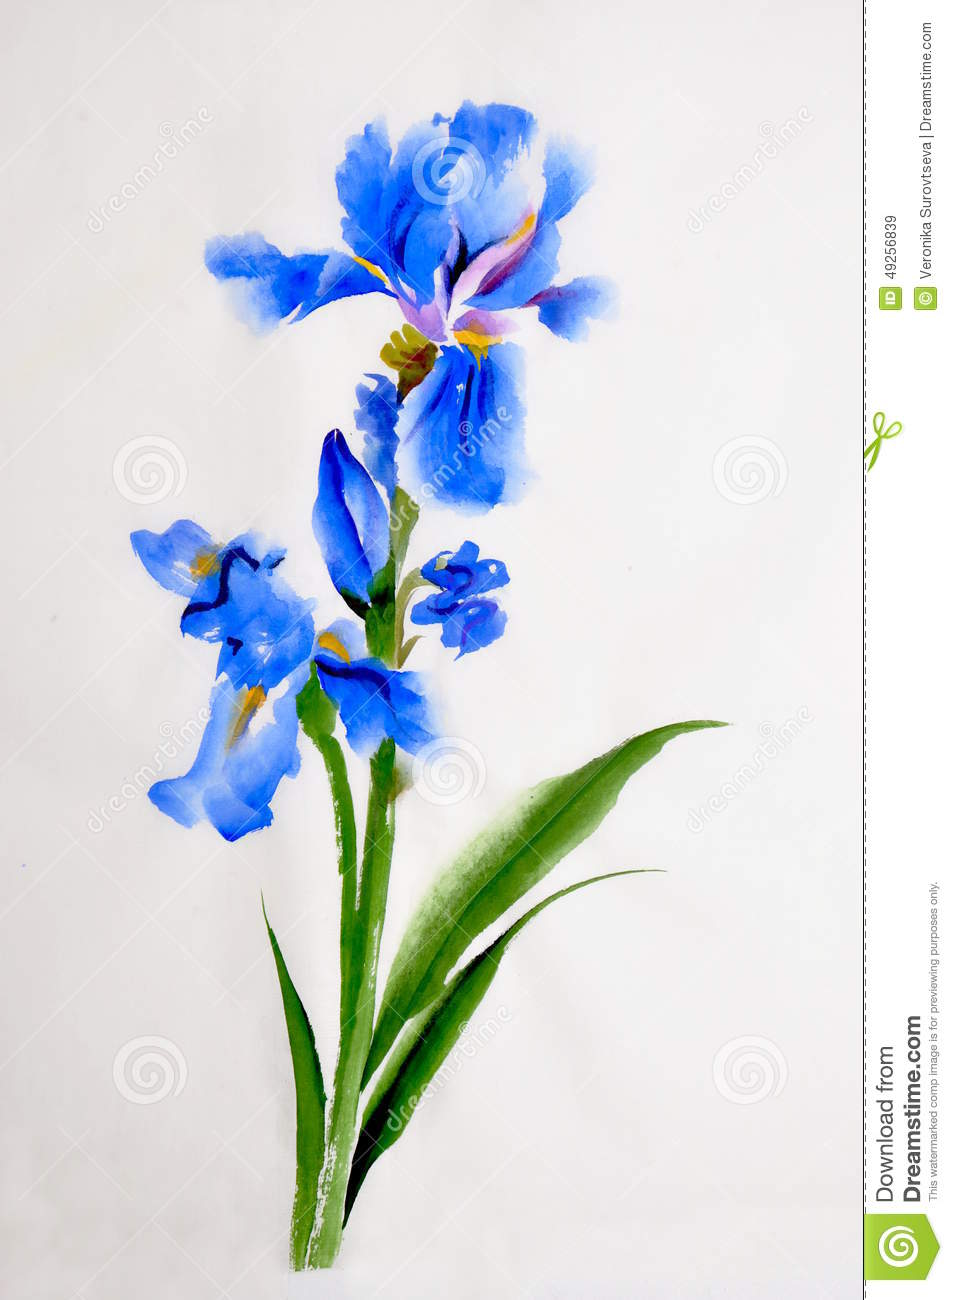 iris flower watercolor painting stock illustration illustration of